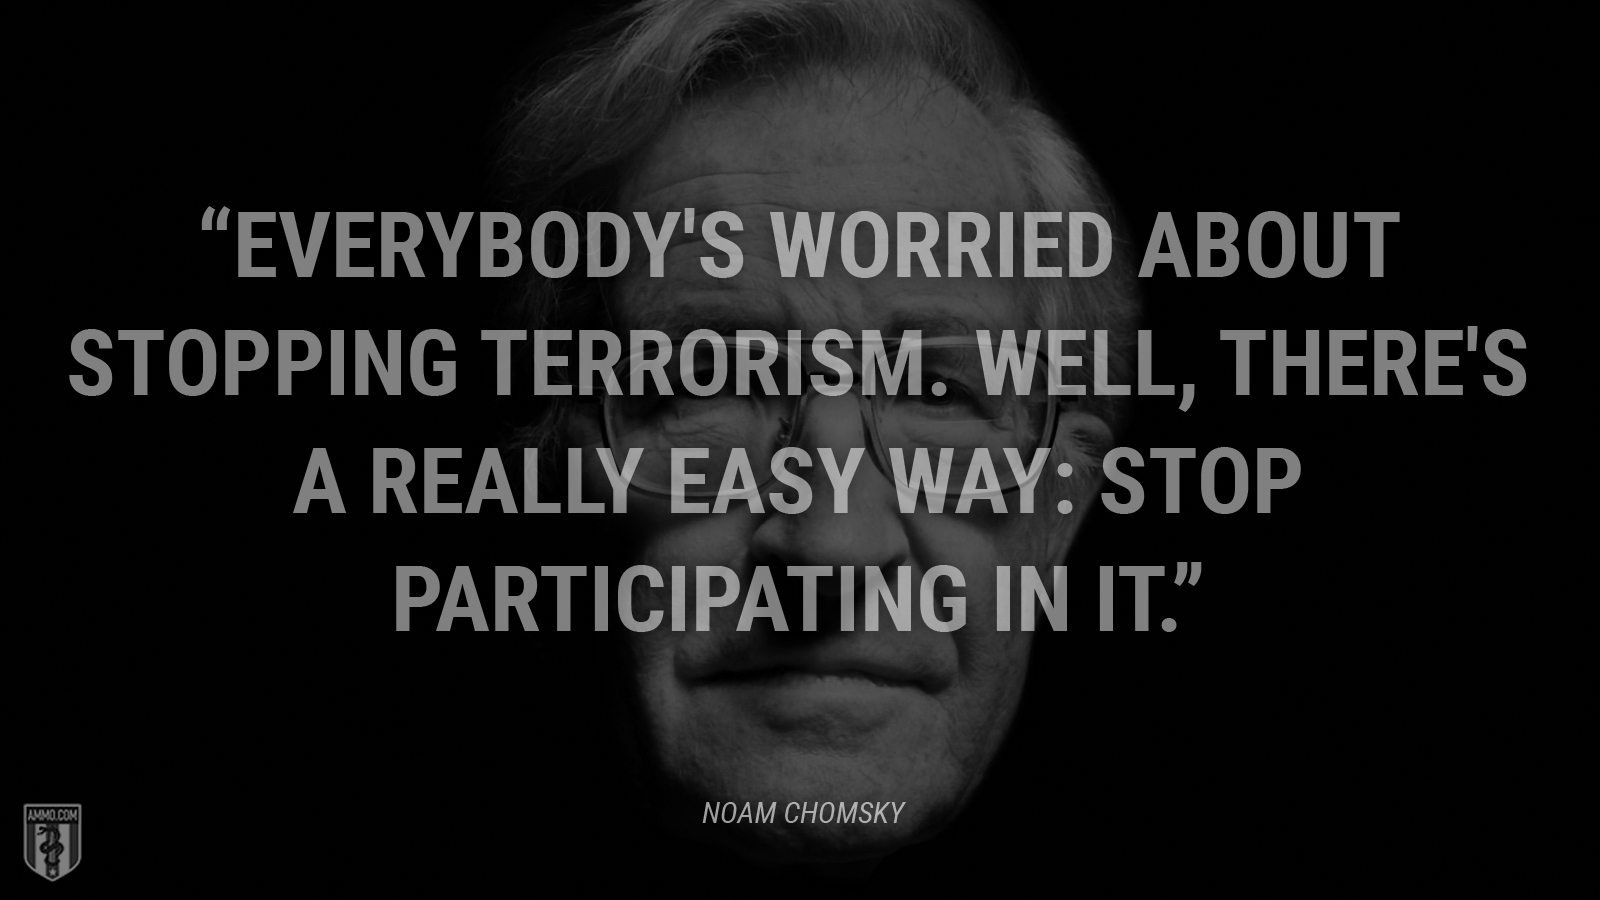 """Everybody's worried about stopping terrorism. Well, there's a really easy way: stop participating in it."" - Noam Chomsky"